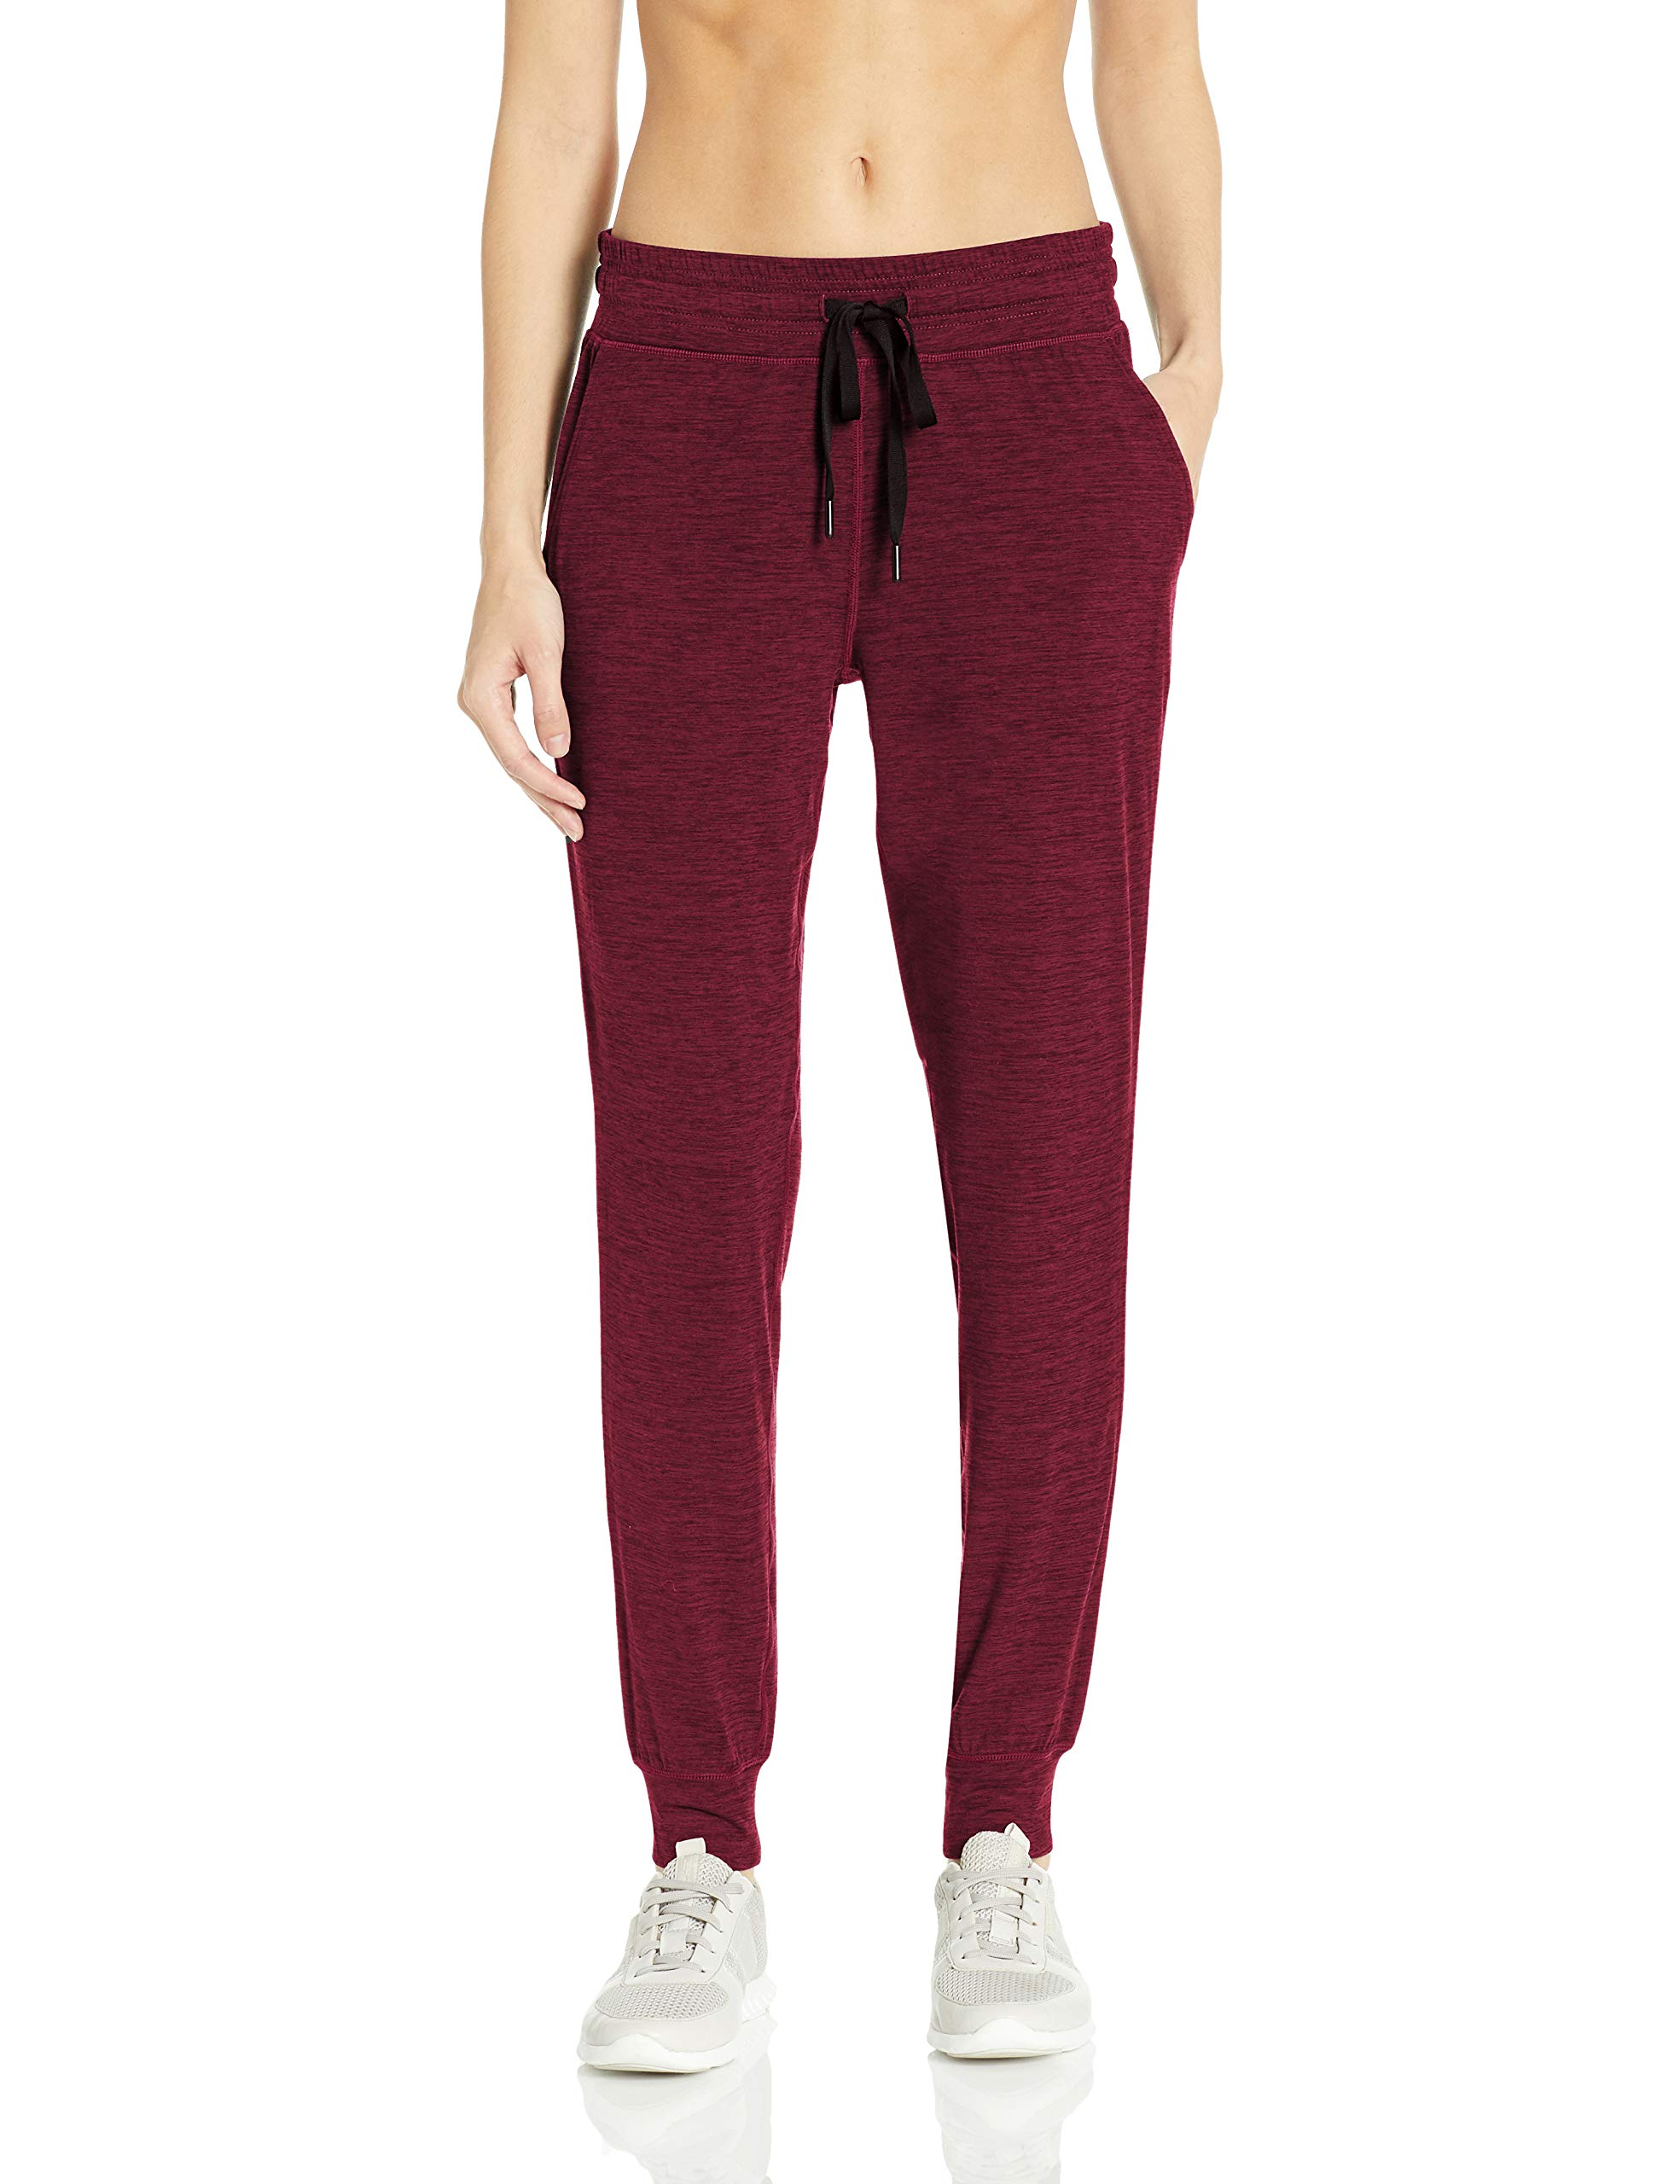 cabf2fac97254 Amazon Essentials Women s Brushed Tech Stretch Jogger Pant product image